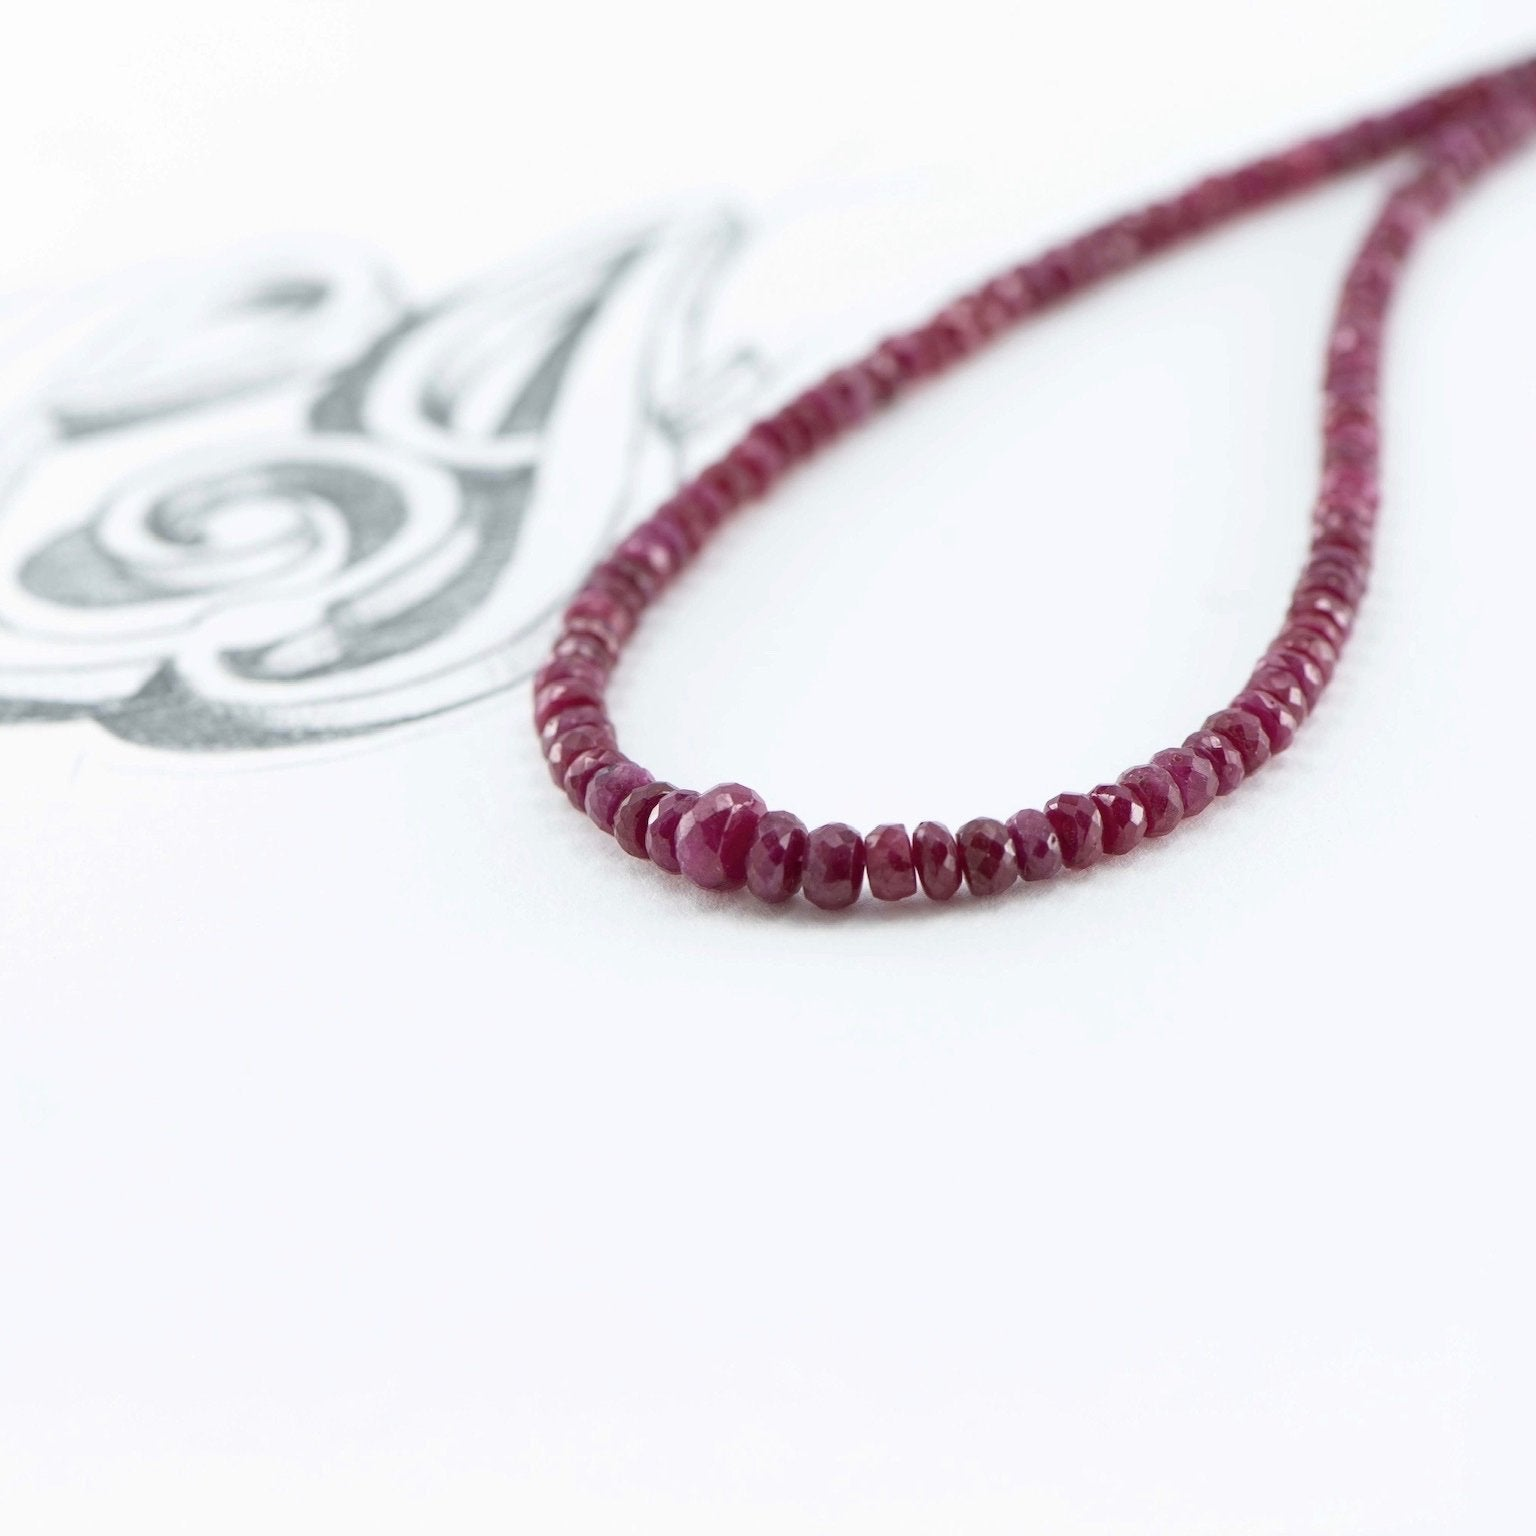 Precious Ruby necklace - Canterbury Jewellers Shop